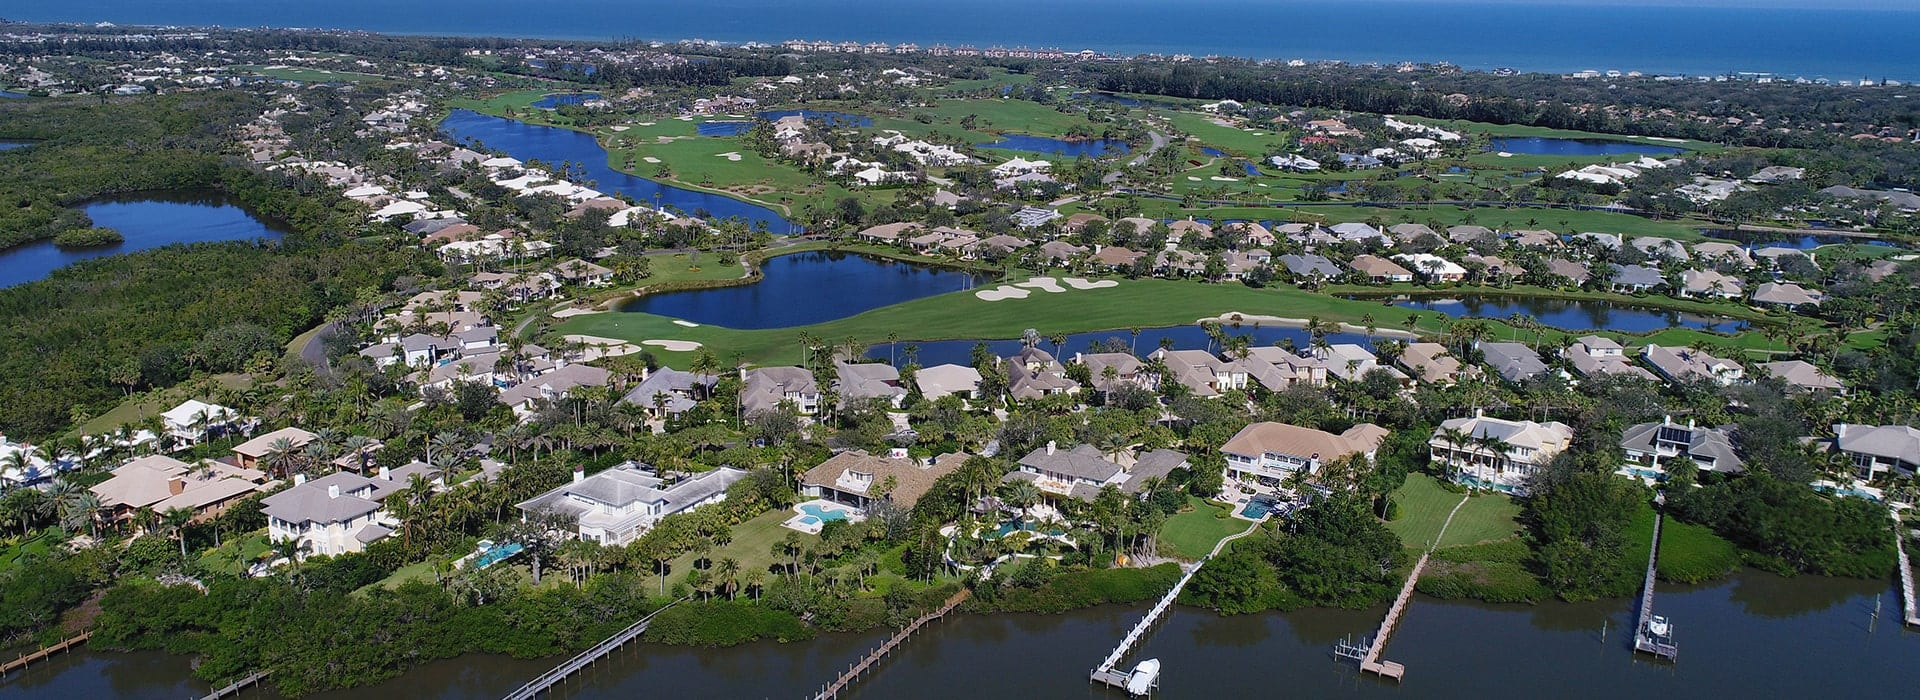 Orchid Island Golf & Beach Club, Gated Club Community